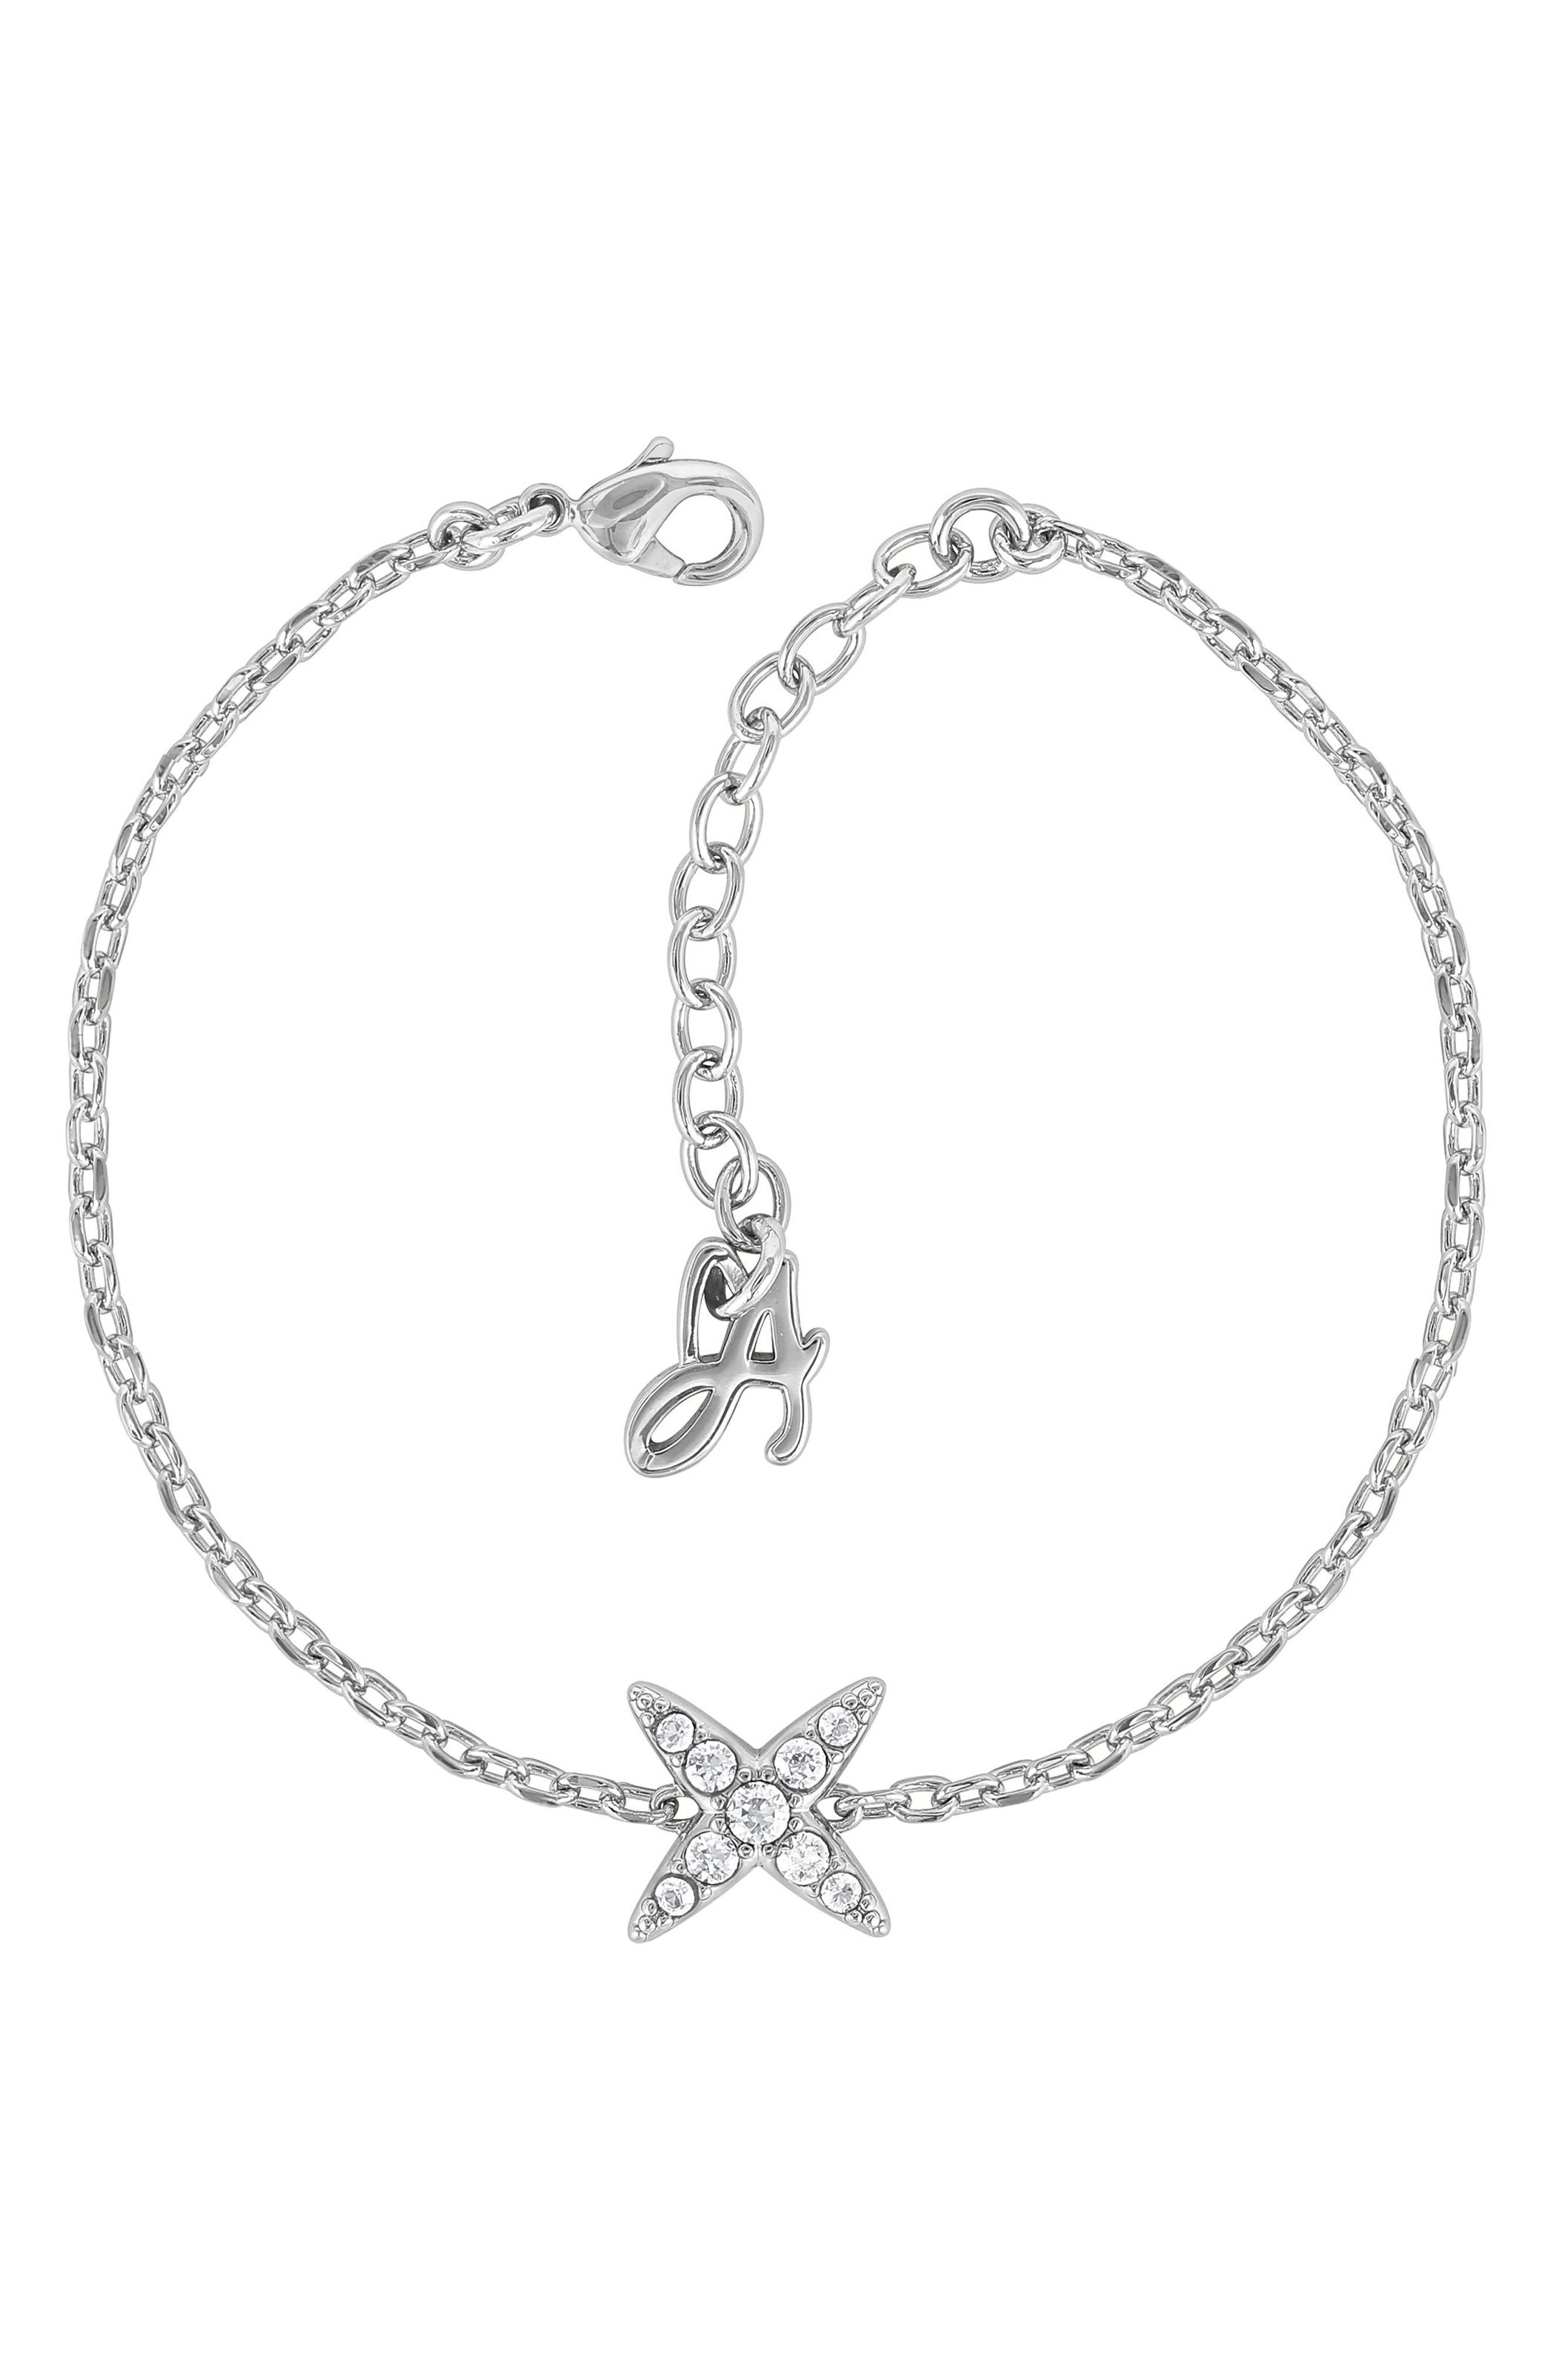 Crystal 4-Point Star Bracelet,                             Main thumbnail 1, color,                             SILVER